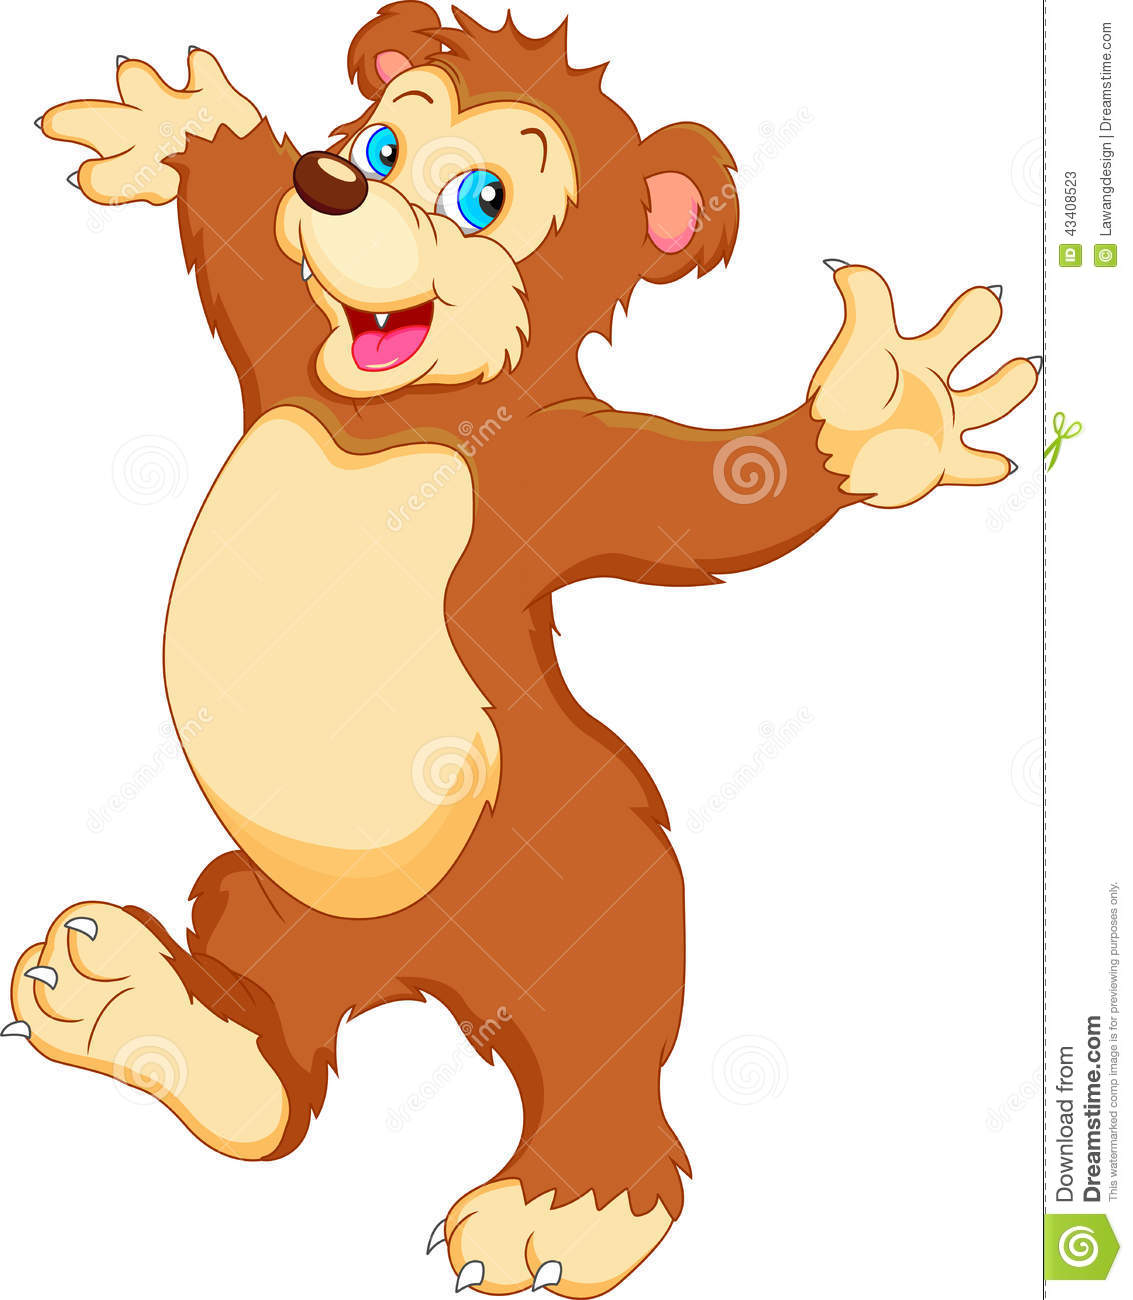 Bear Vectors Photos and PSD files  Free Download